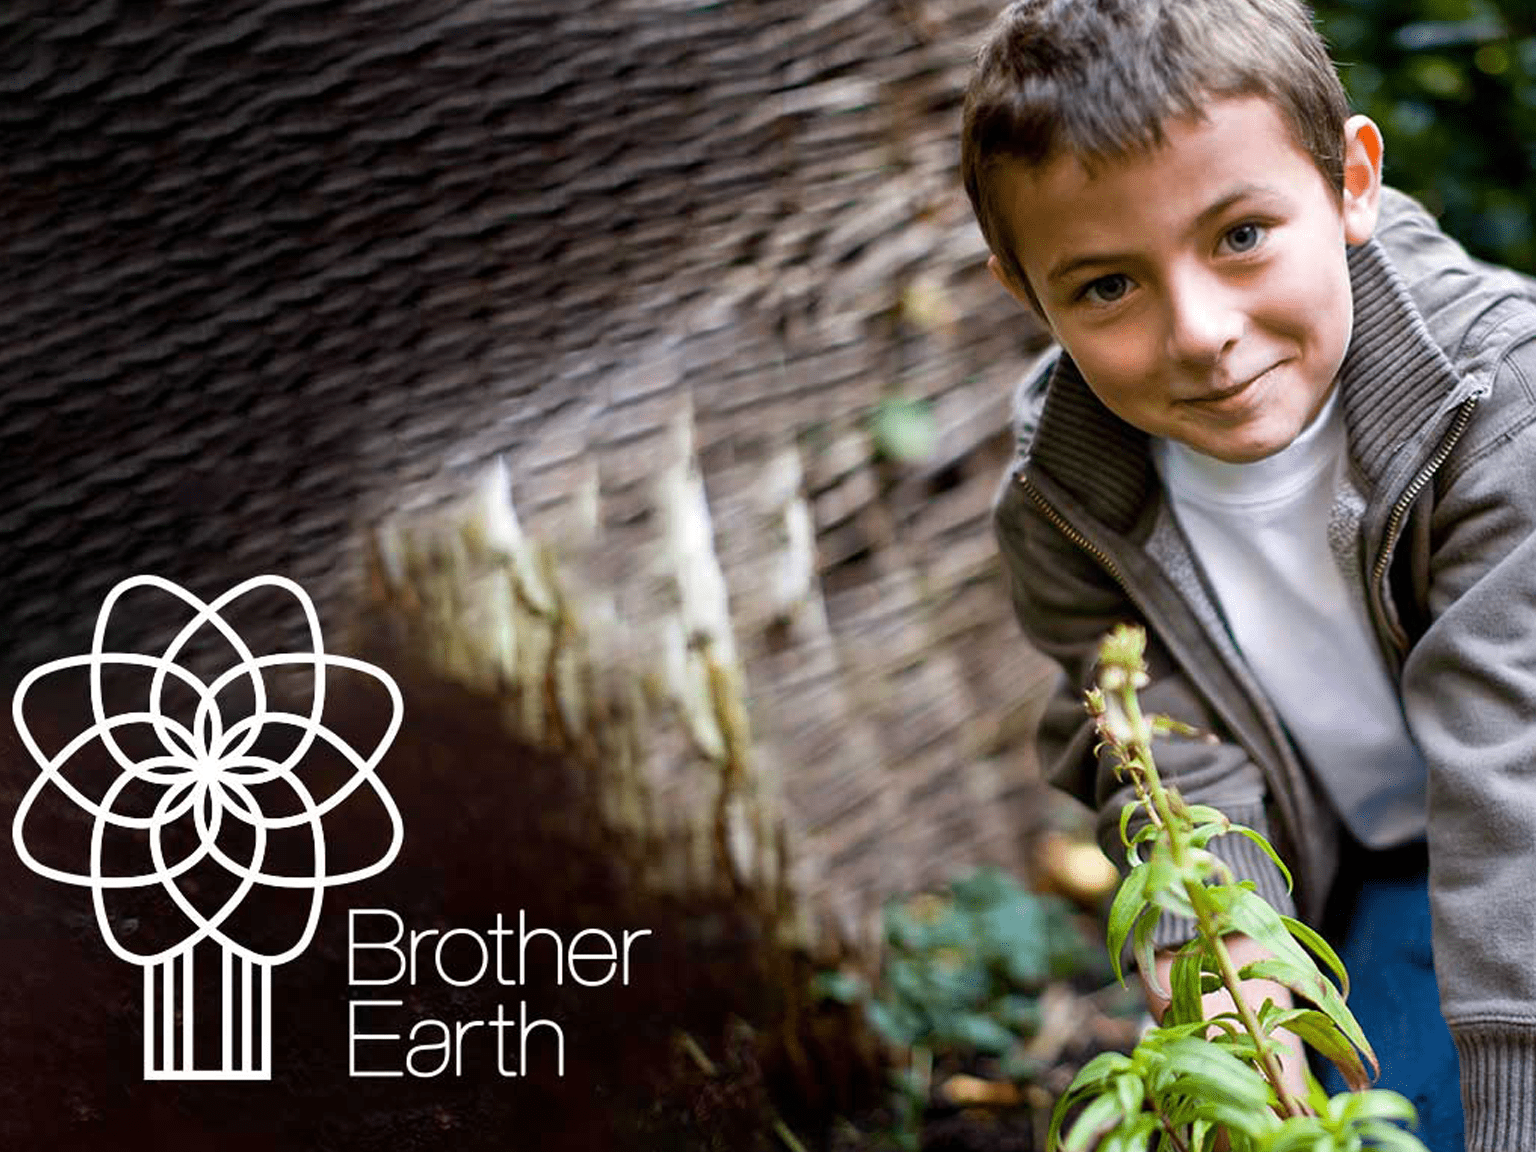 Brother Earth - small boy looking at plant